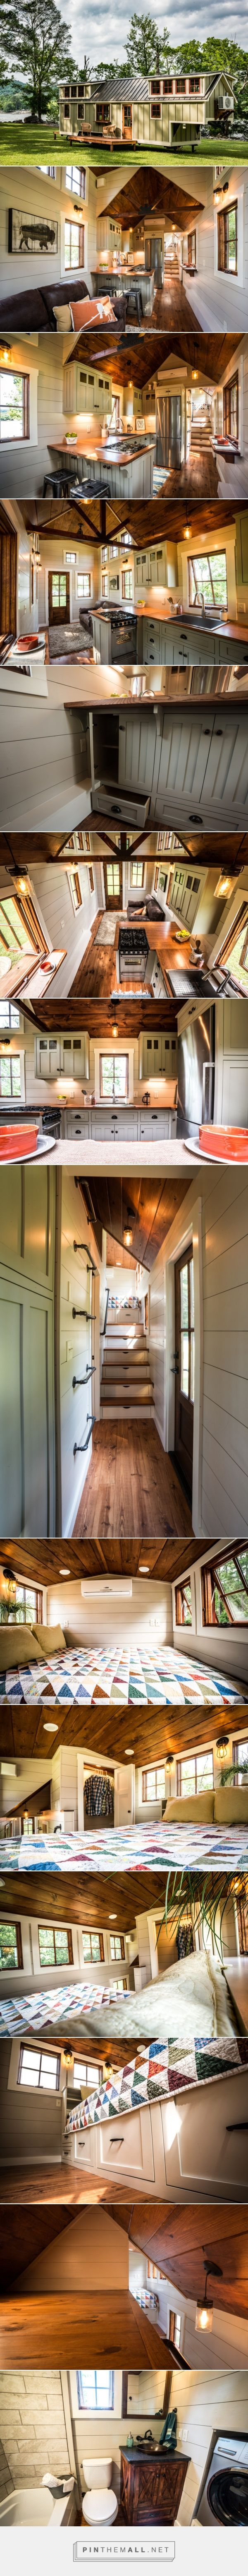 The 37' Denali by Timbercraft Tiny Homes... - a grouped images picture - Pin Them All This is the Denali, a gorgeous tiny house build by Timbercraft Tiny Homes in Guntersville, AL. It's a 37′ long ,8.5′ wide and 13.5′ high tiny house and with that awesome length they were able to fit a lot in! It's 352 sq. ft. as shown below, but they add an optional loft over the living room to make the space 430 sq. ft.